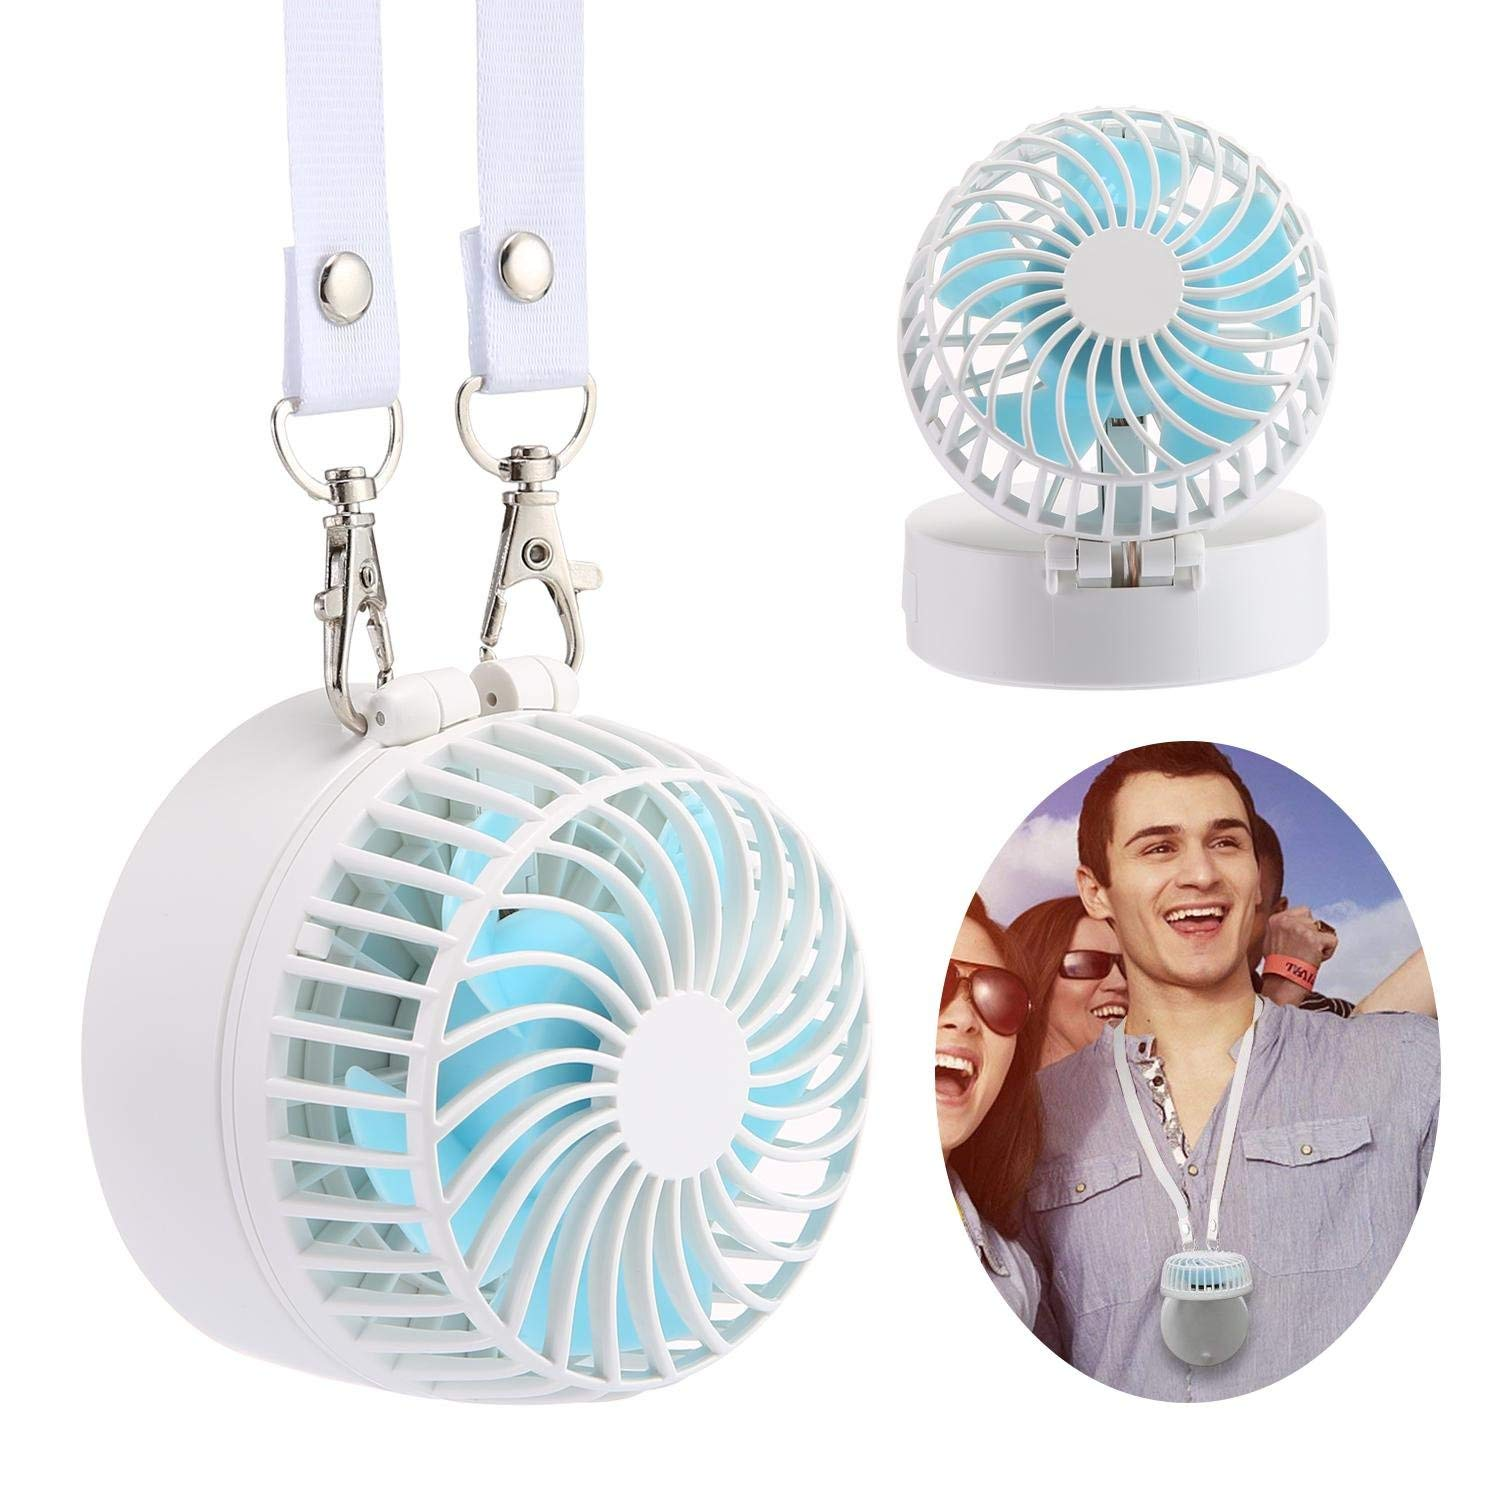 KOBWA Neck Fan, Mini Portable Outdoor Handheld Fan with Neck Strap, 180° Adjustable Desk Fan with Rechargable Battery & Make-up Mirror for Home Office Travel, White